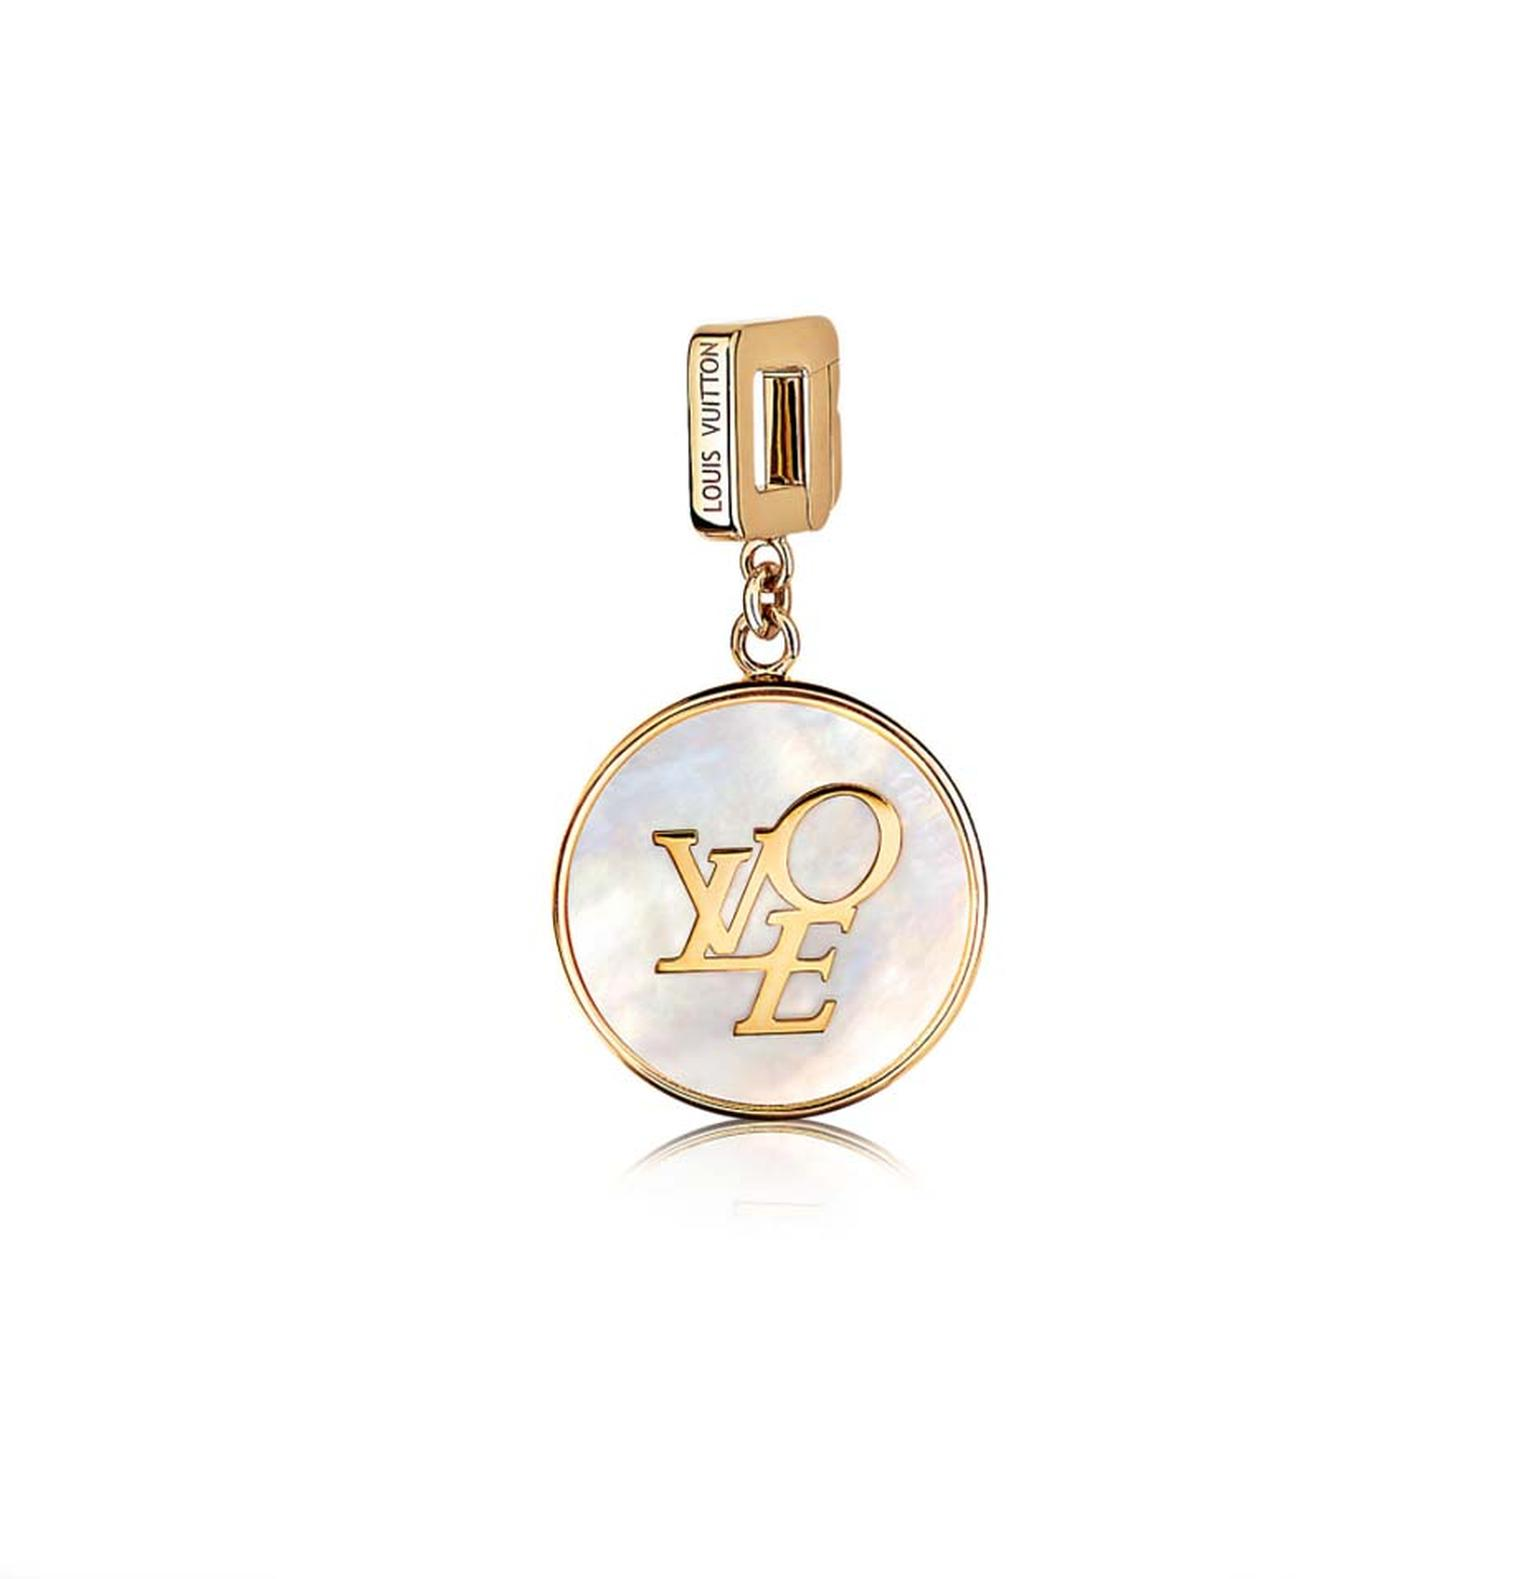 Louis Vuitton rose gold and mother-of-pearl Love pendant, which can be worn on a bracelet or as a pendant on a necklace (£2,200).